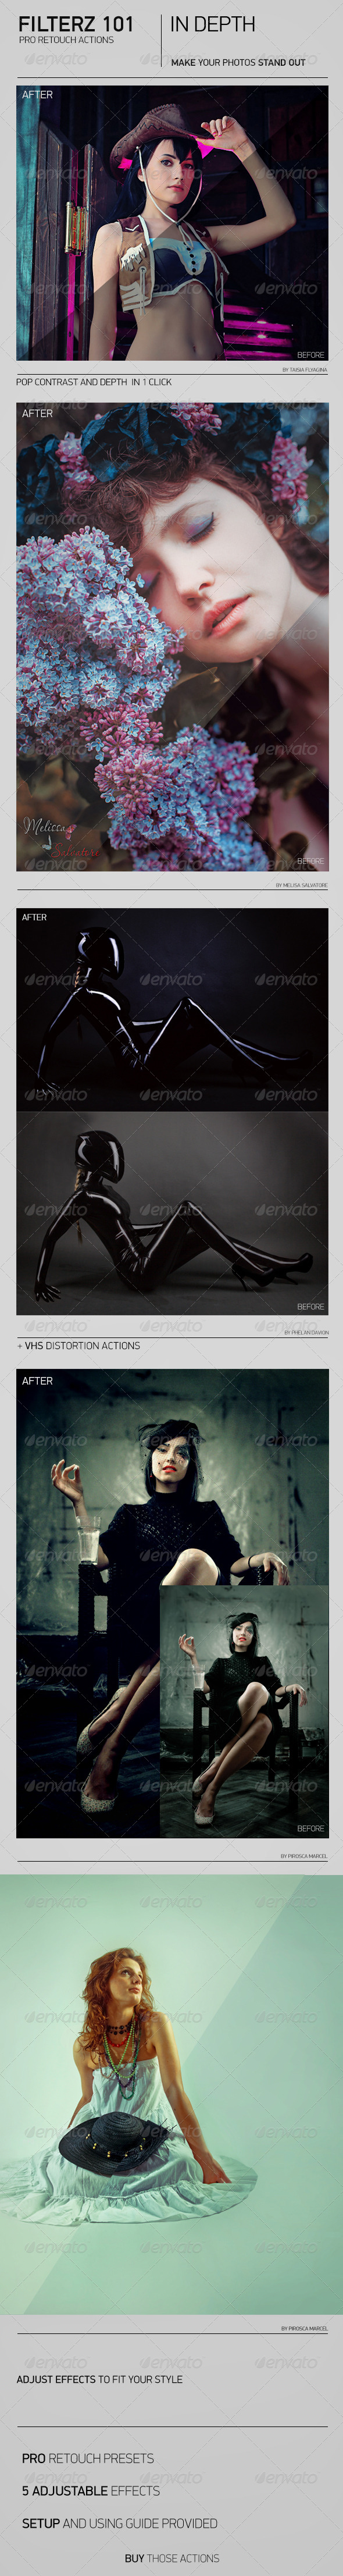 GraphicRiver FILTERZ 101 IN DEPTH 7795494